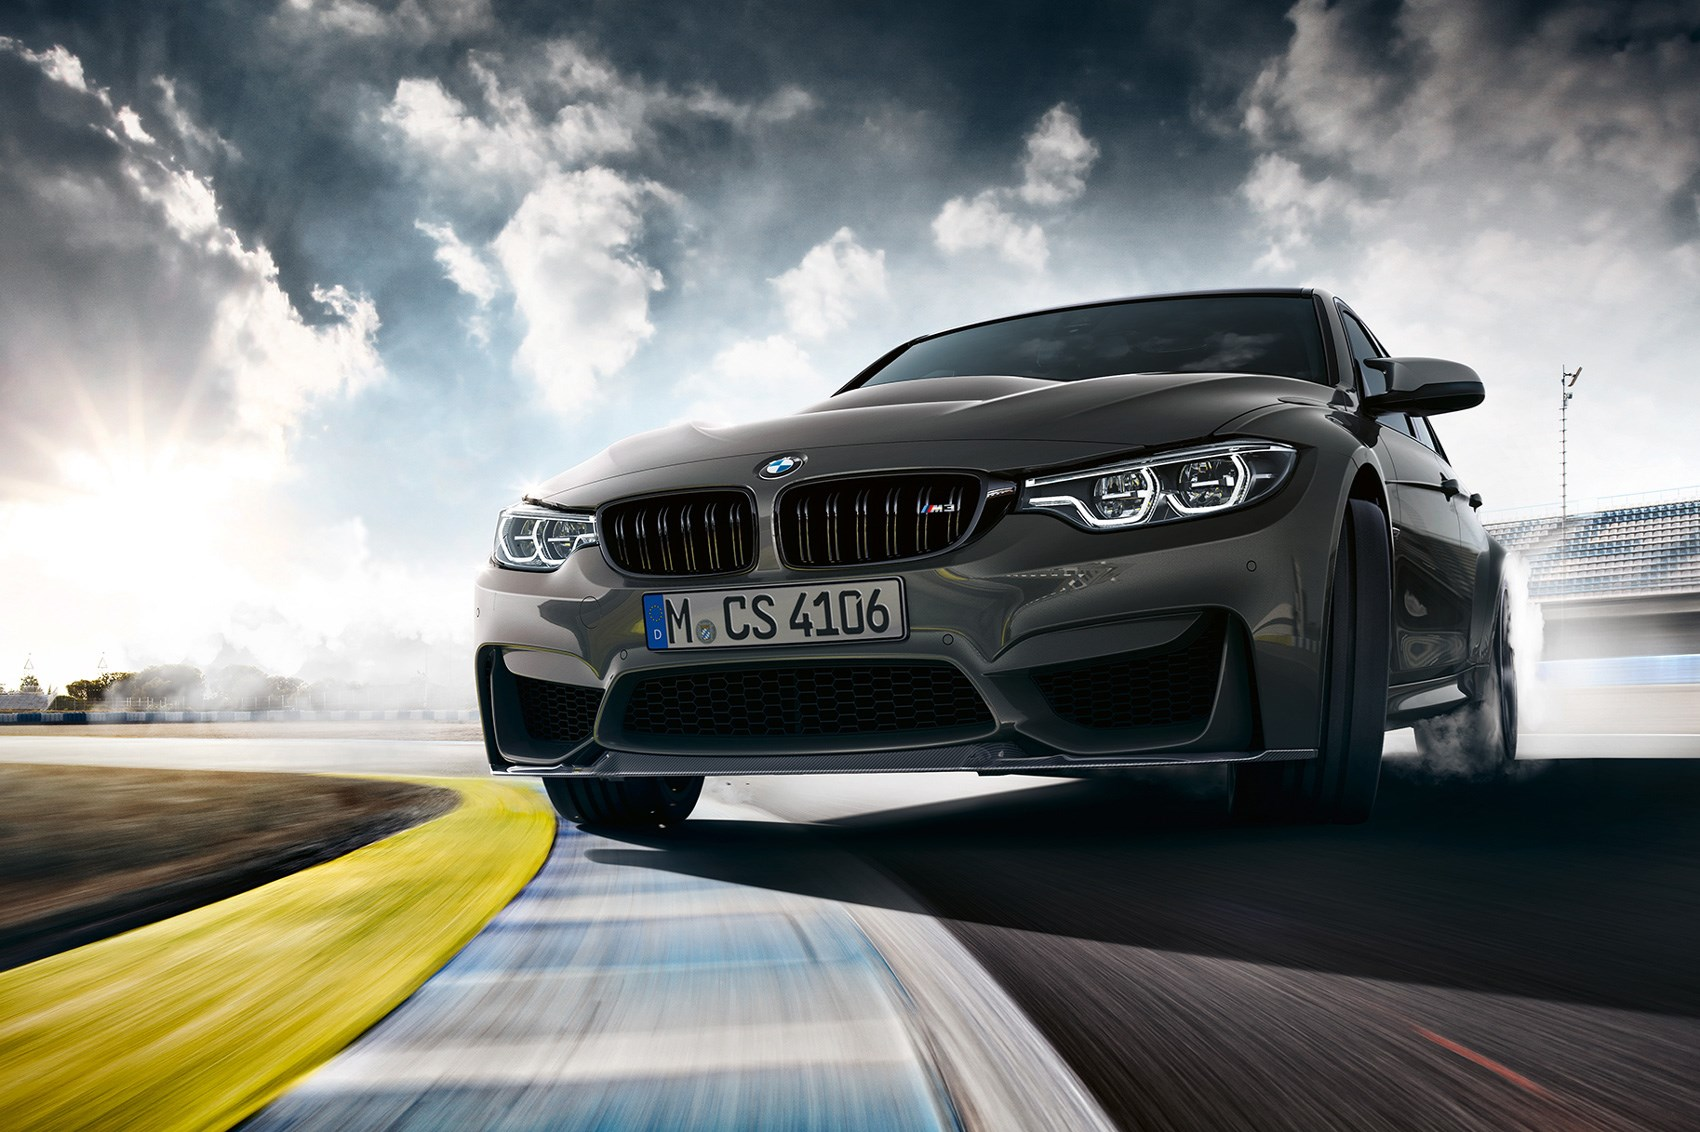 BMW M3 CS announced for Australia